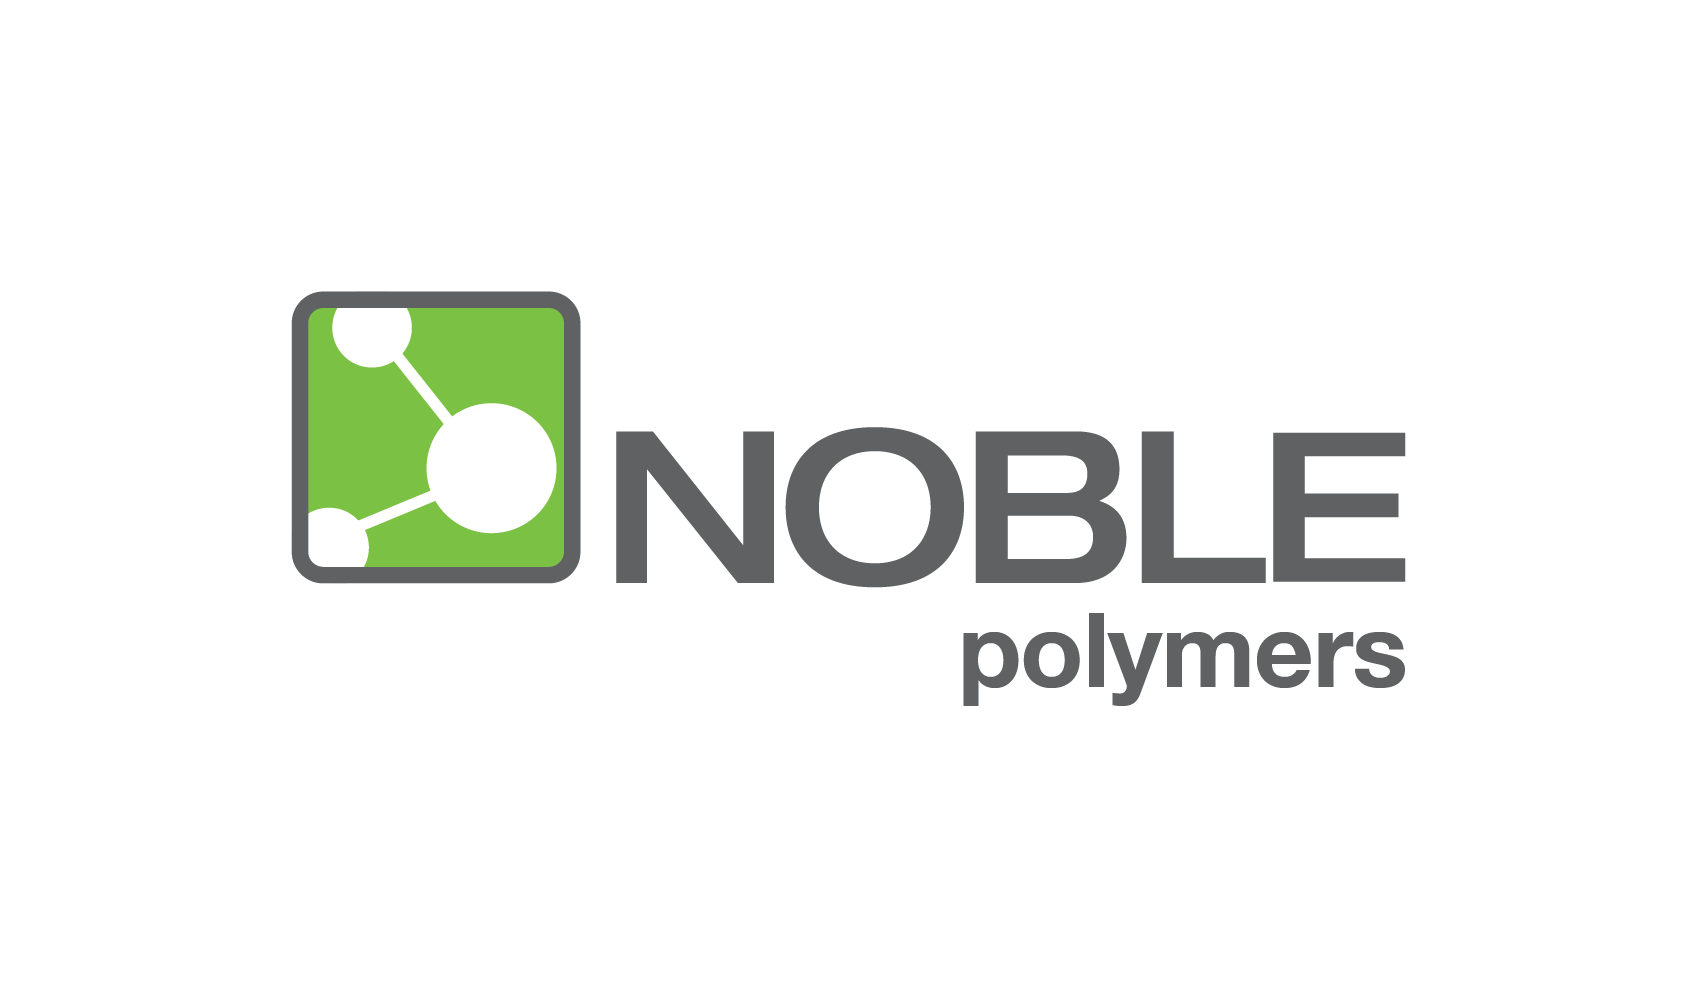 Noble Polymers